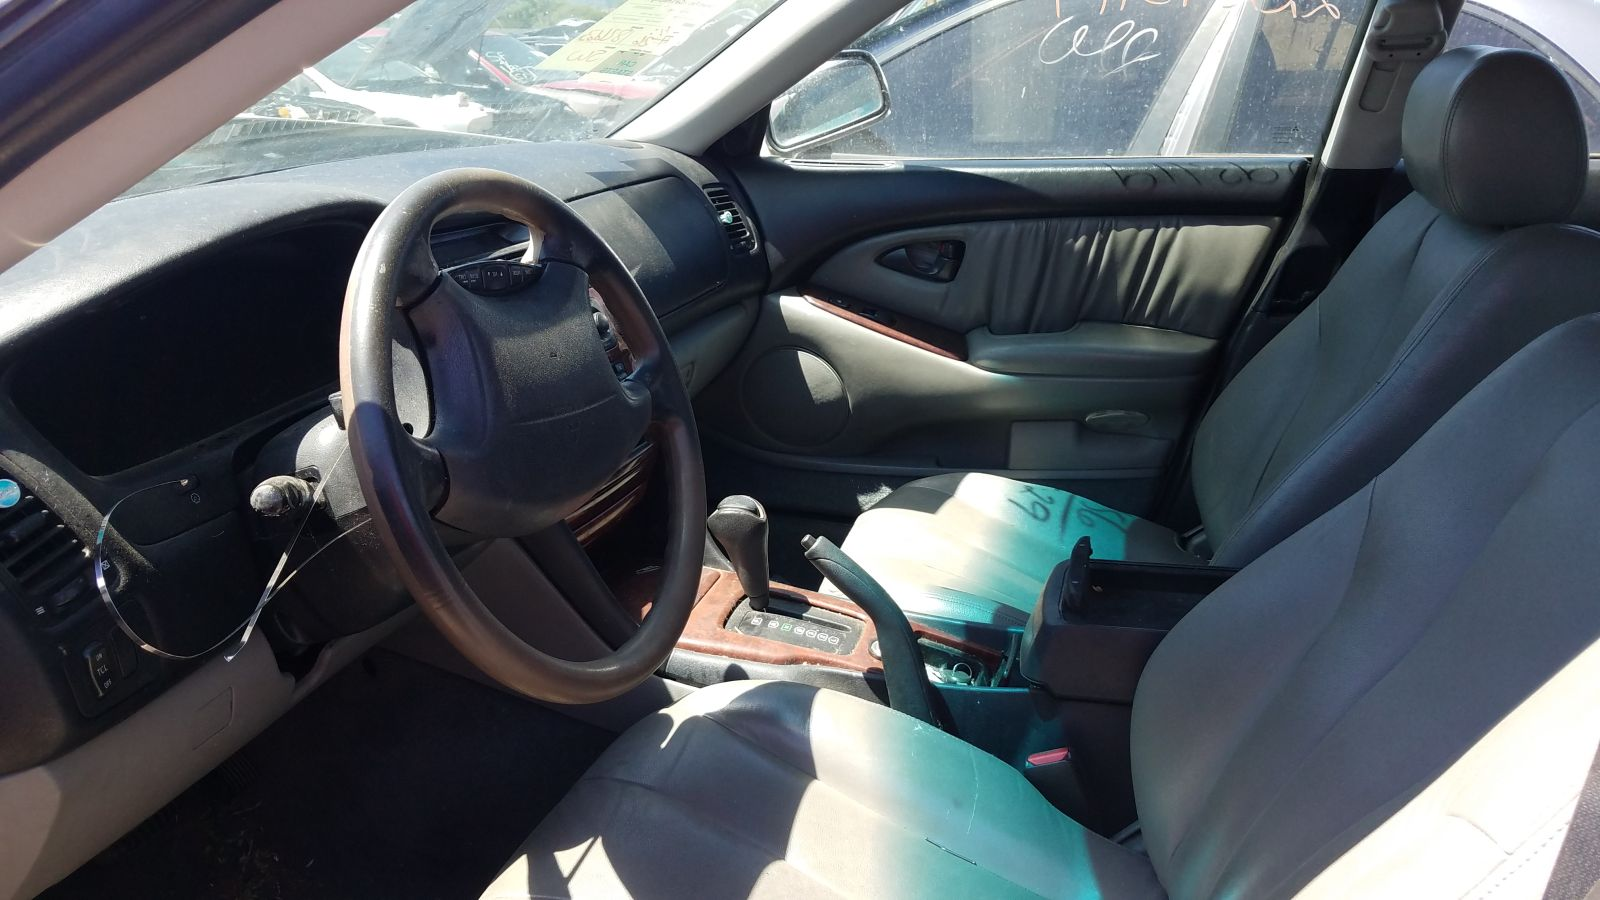 hight resolution of the interior is pretty nice in its turn of the 21st century manner and the fact that this car has an ignition key means that it s probably an insurance